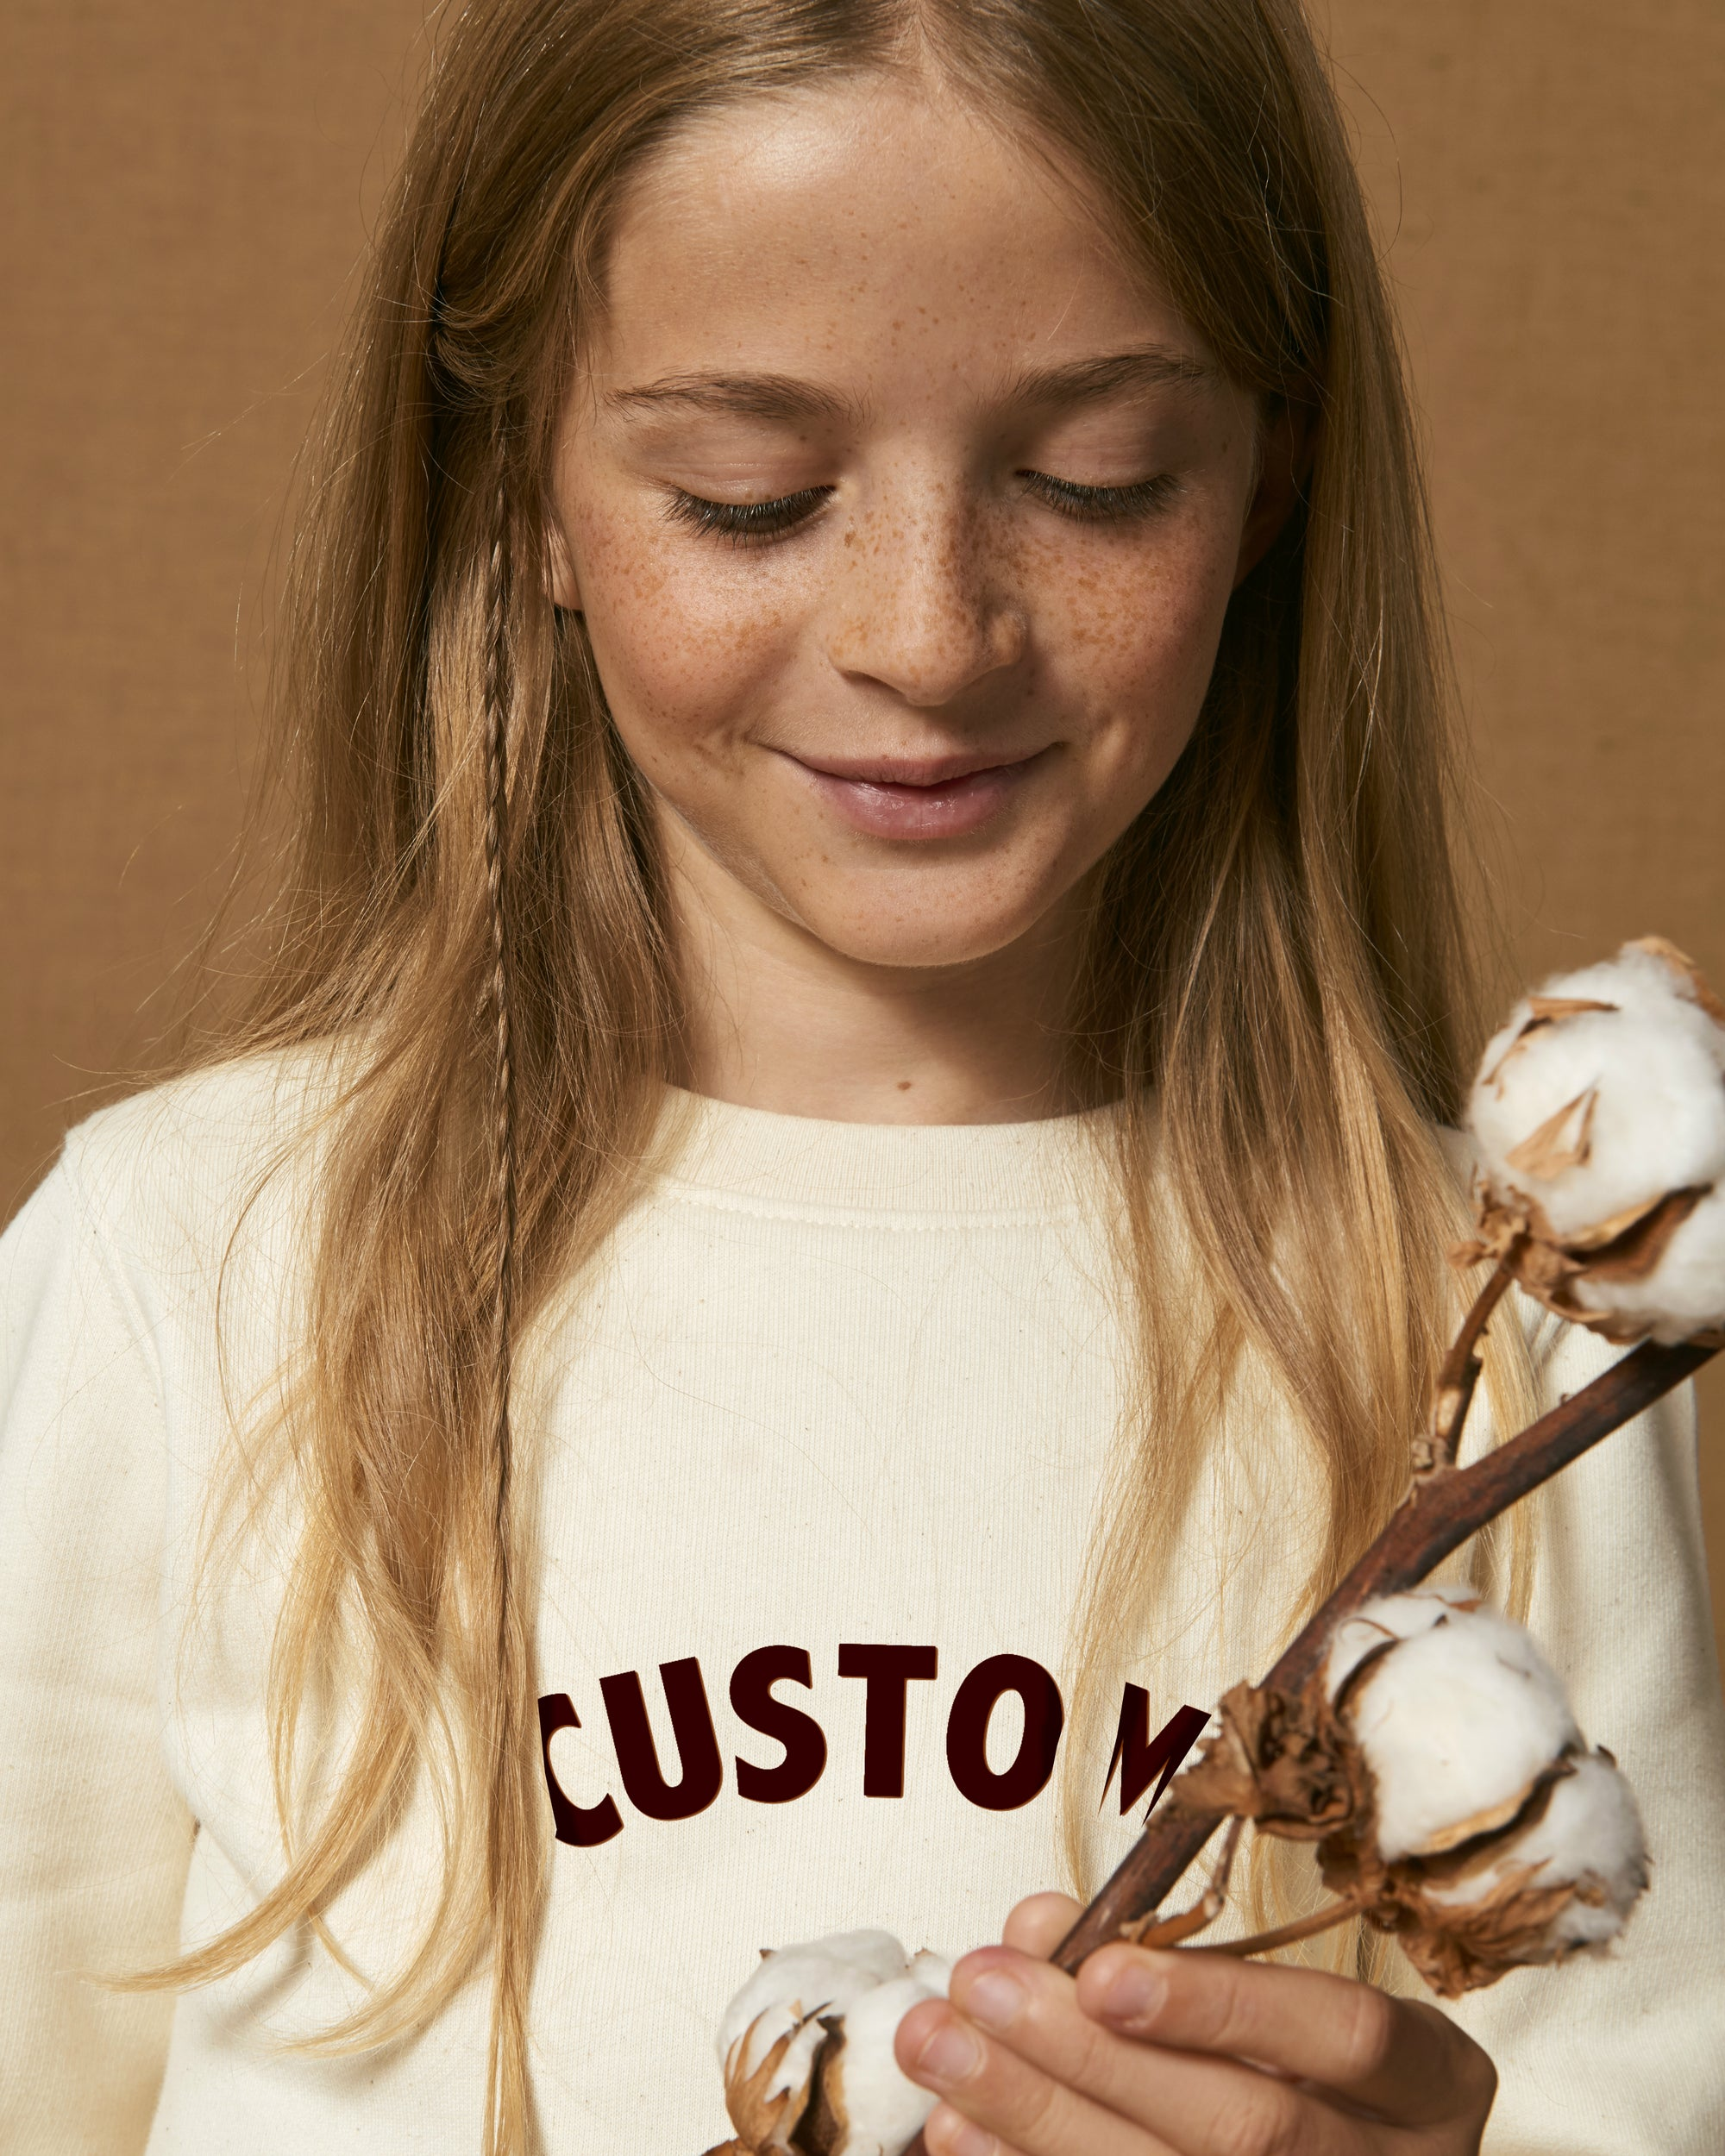 KIDS' ORGANIC COTTON CREW NECK SWEATSHIRT - customisable centre chest embroidery